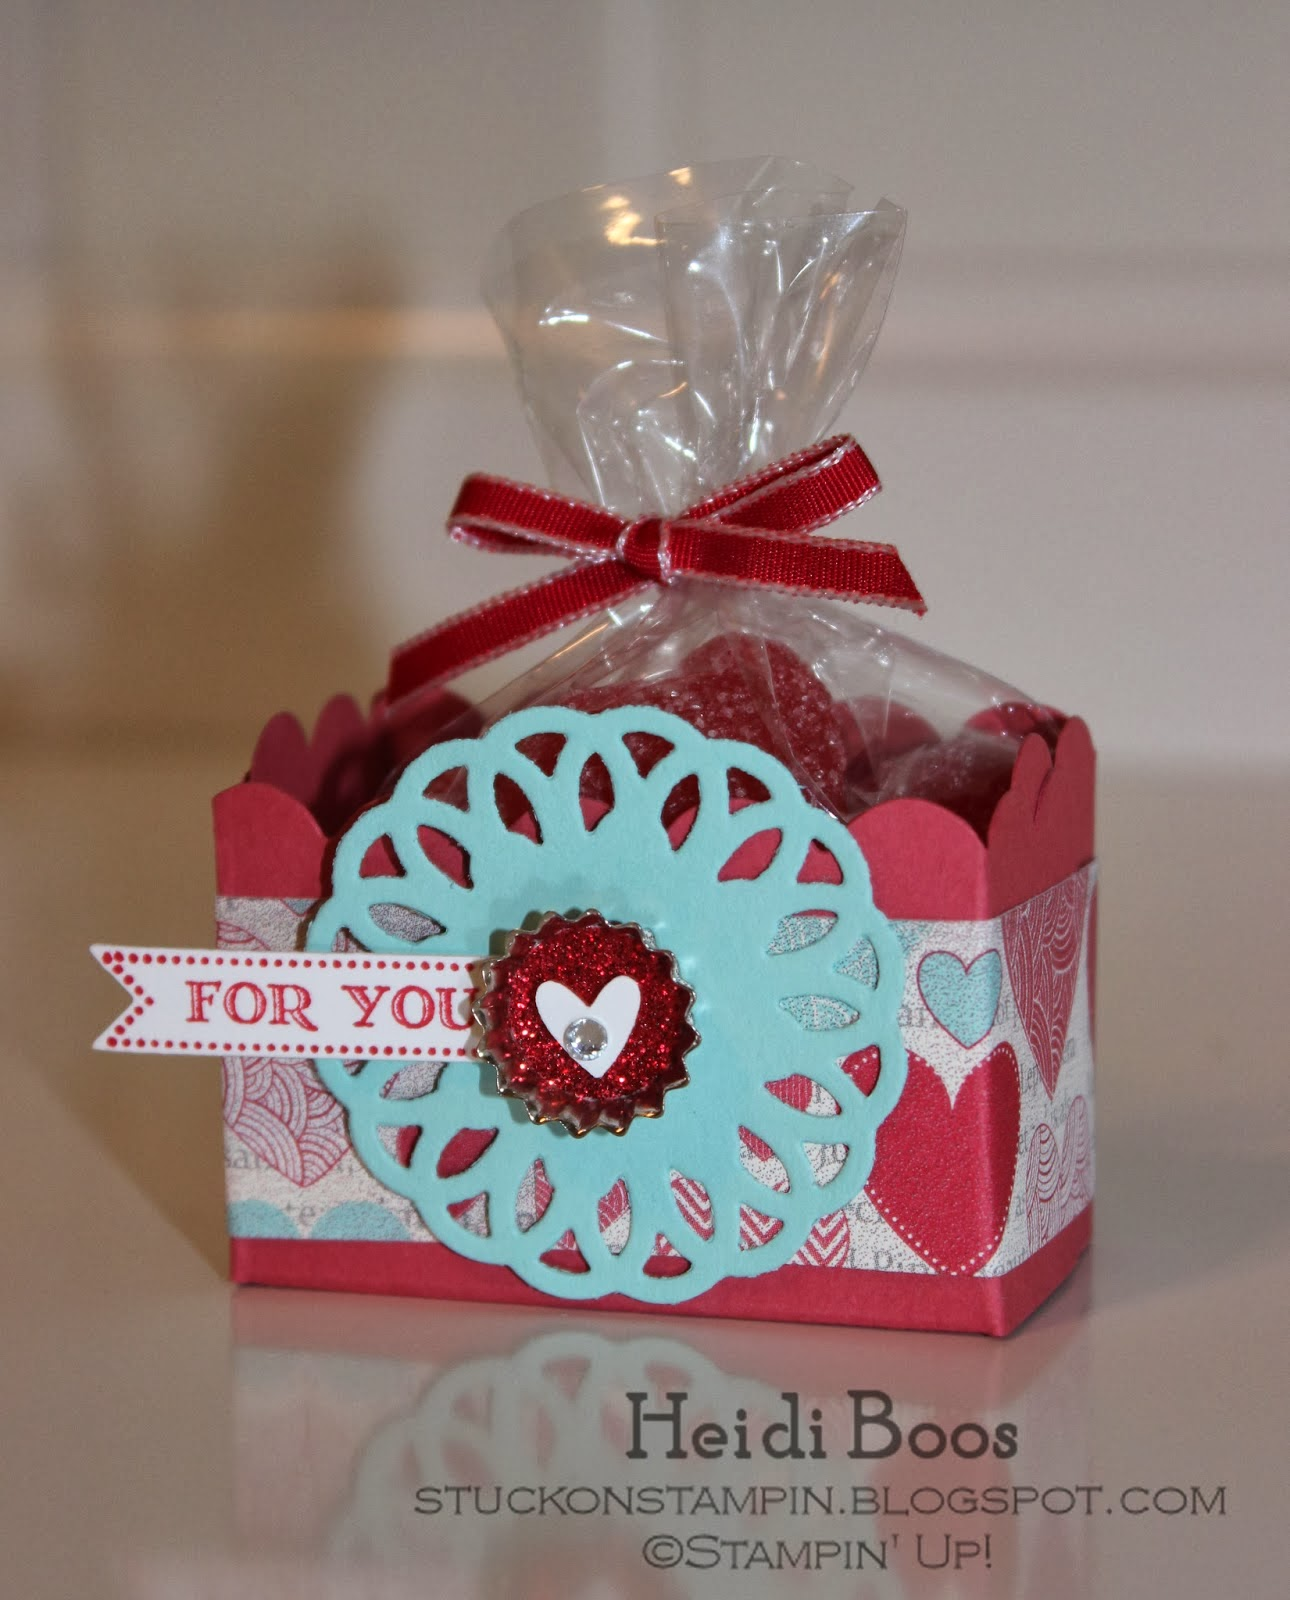 http://stuckonstampin.blogspot.com/2013/01/valentines-treats-big-shot-style.html